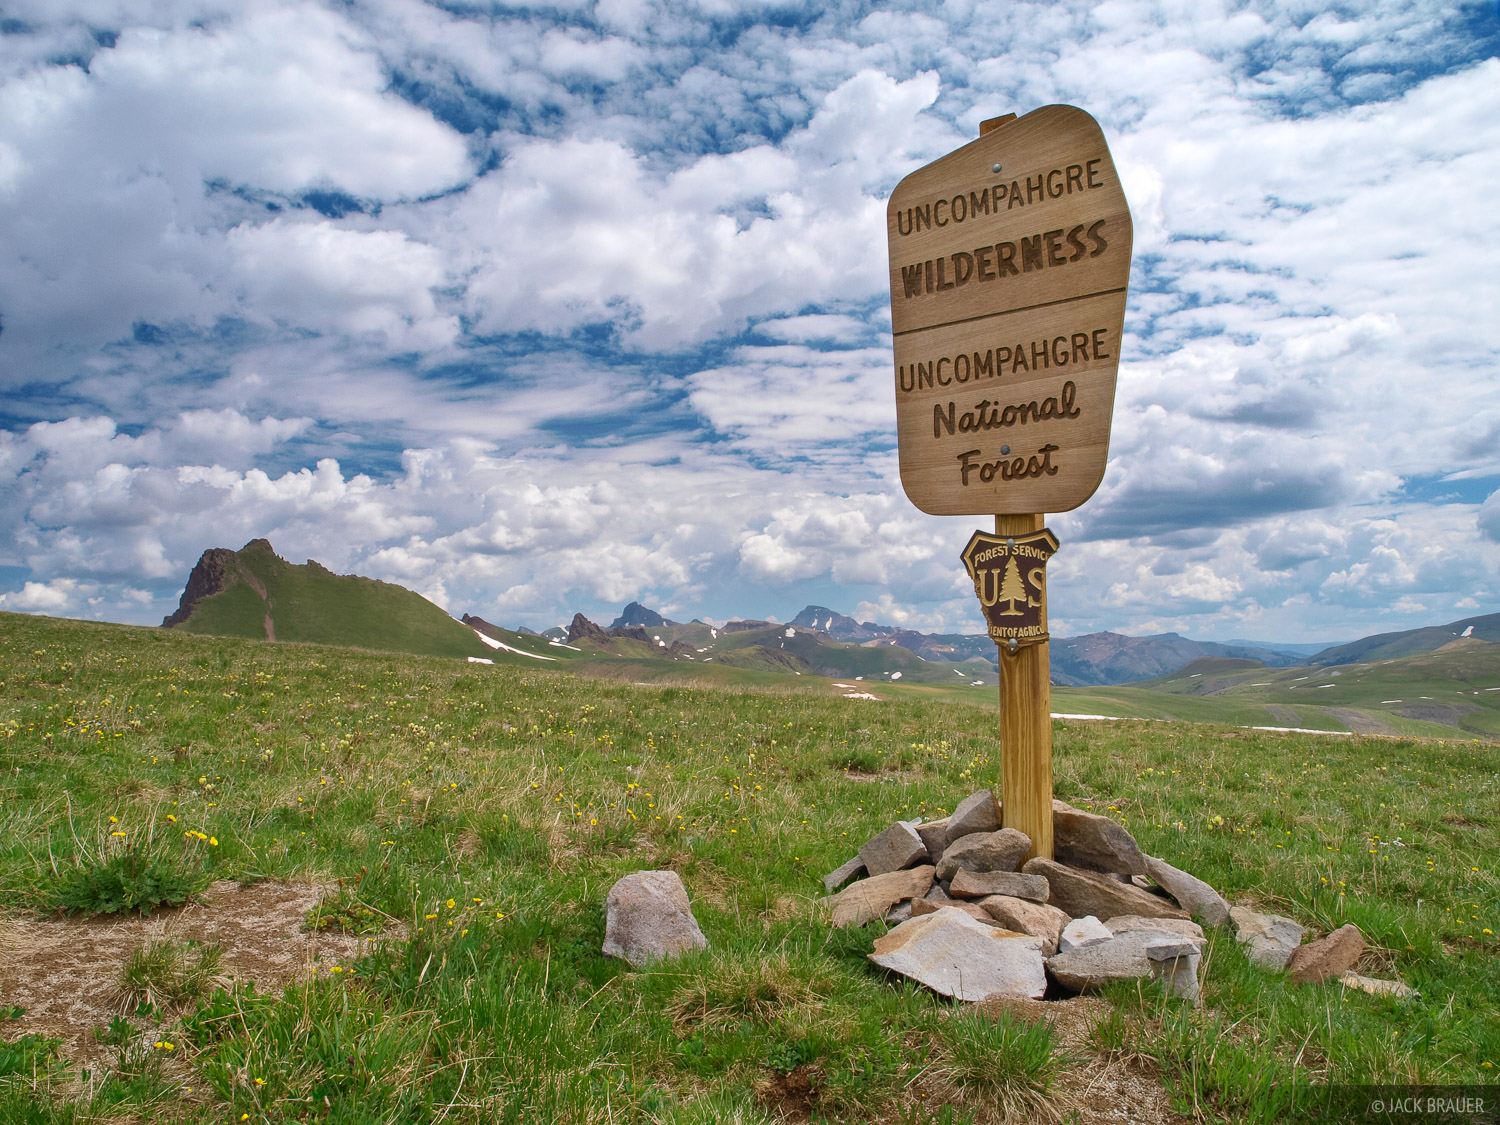 Colorado, San Juan Mountains, Uncompahgre Wilderness, sign, photo